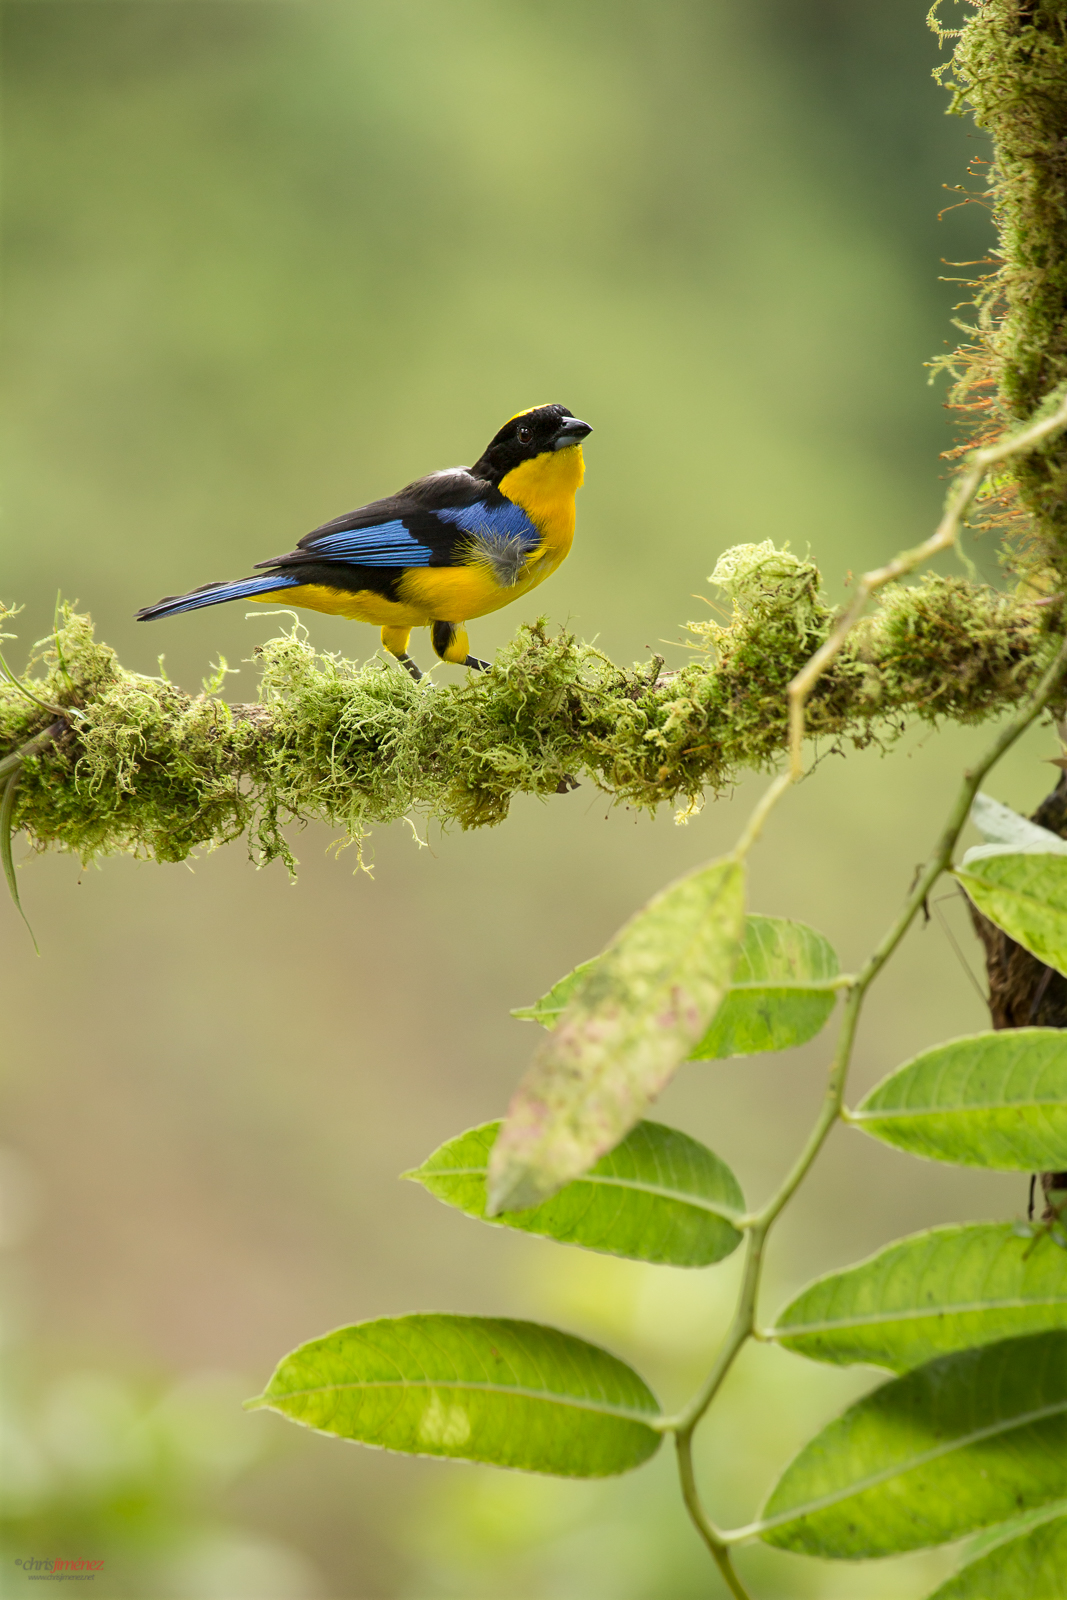 Blue Winged Mountain Tanager (Anisognathus somptuosus) perched on a branch at the rainforest at Cali, Colombia